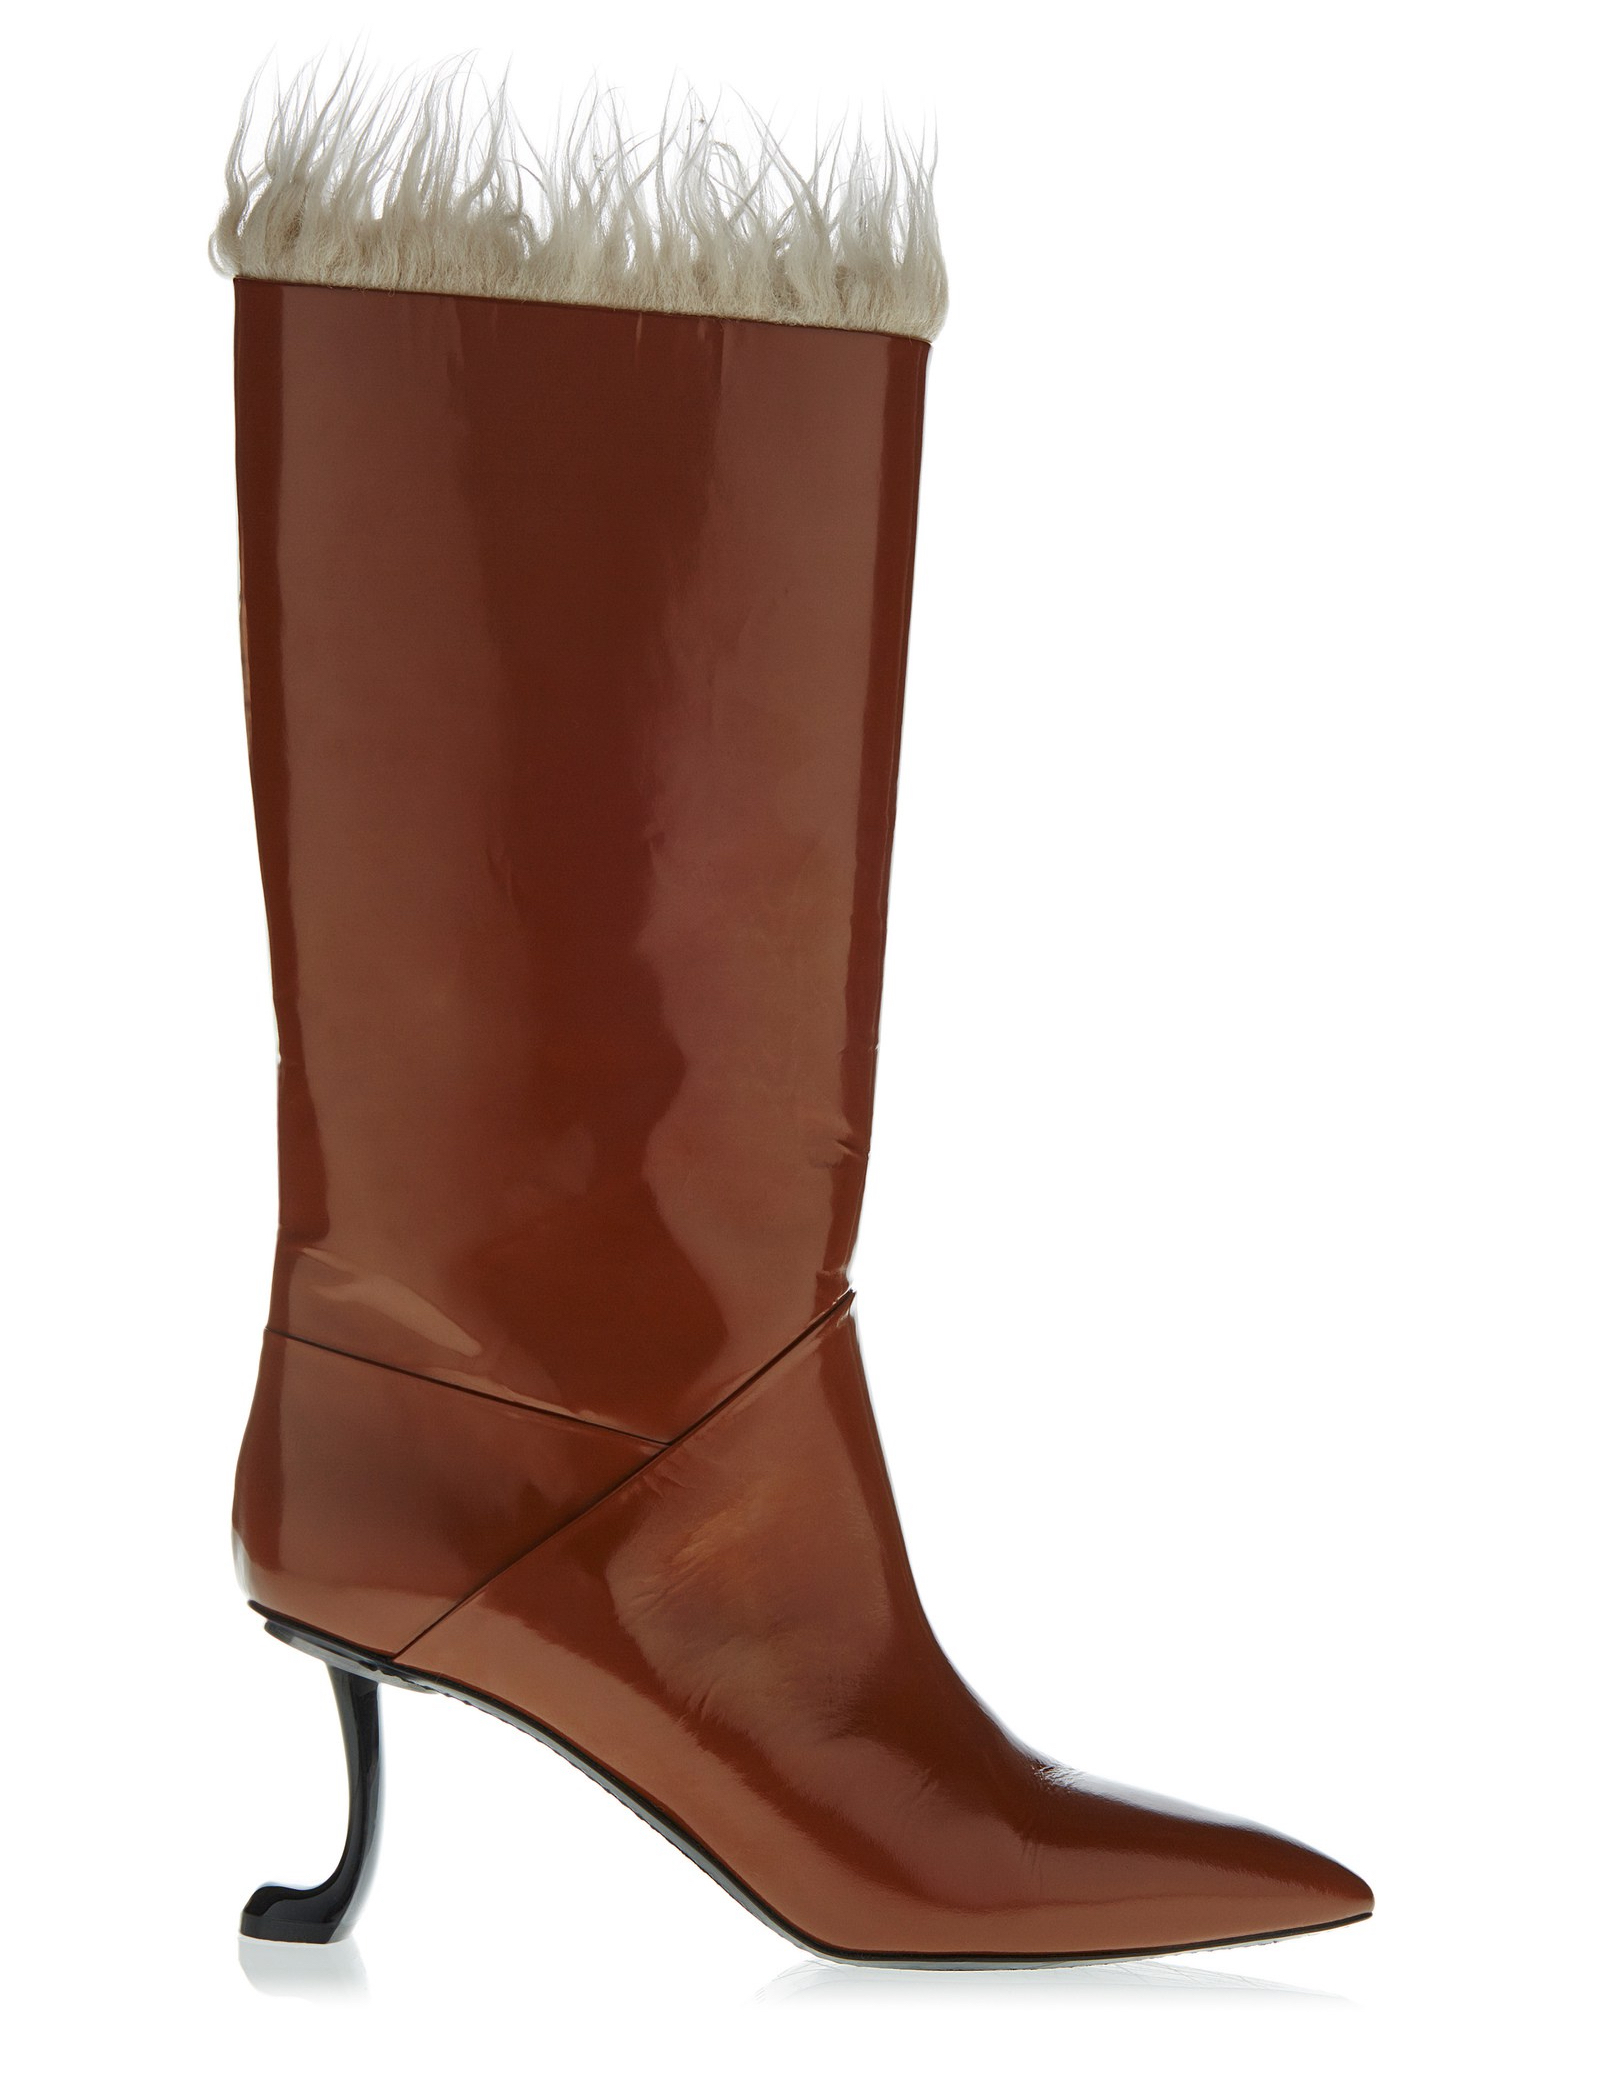 large_marni-brown-fur-trimmed-boot-3